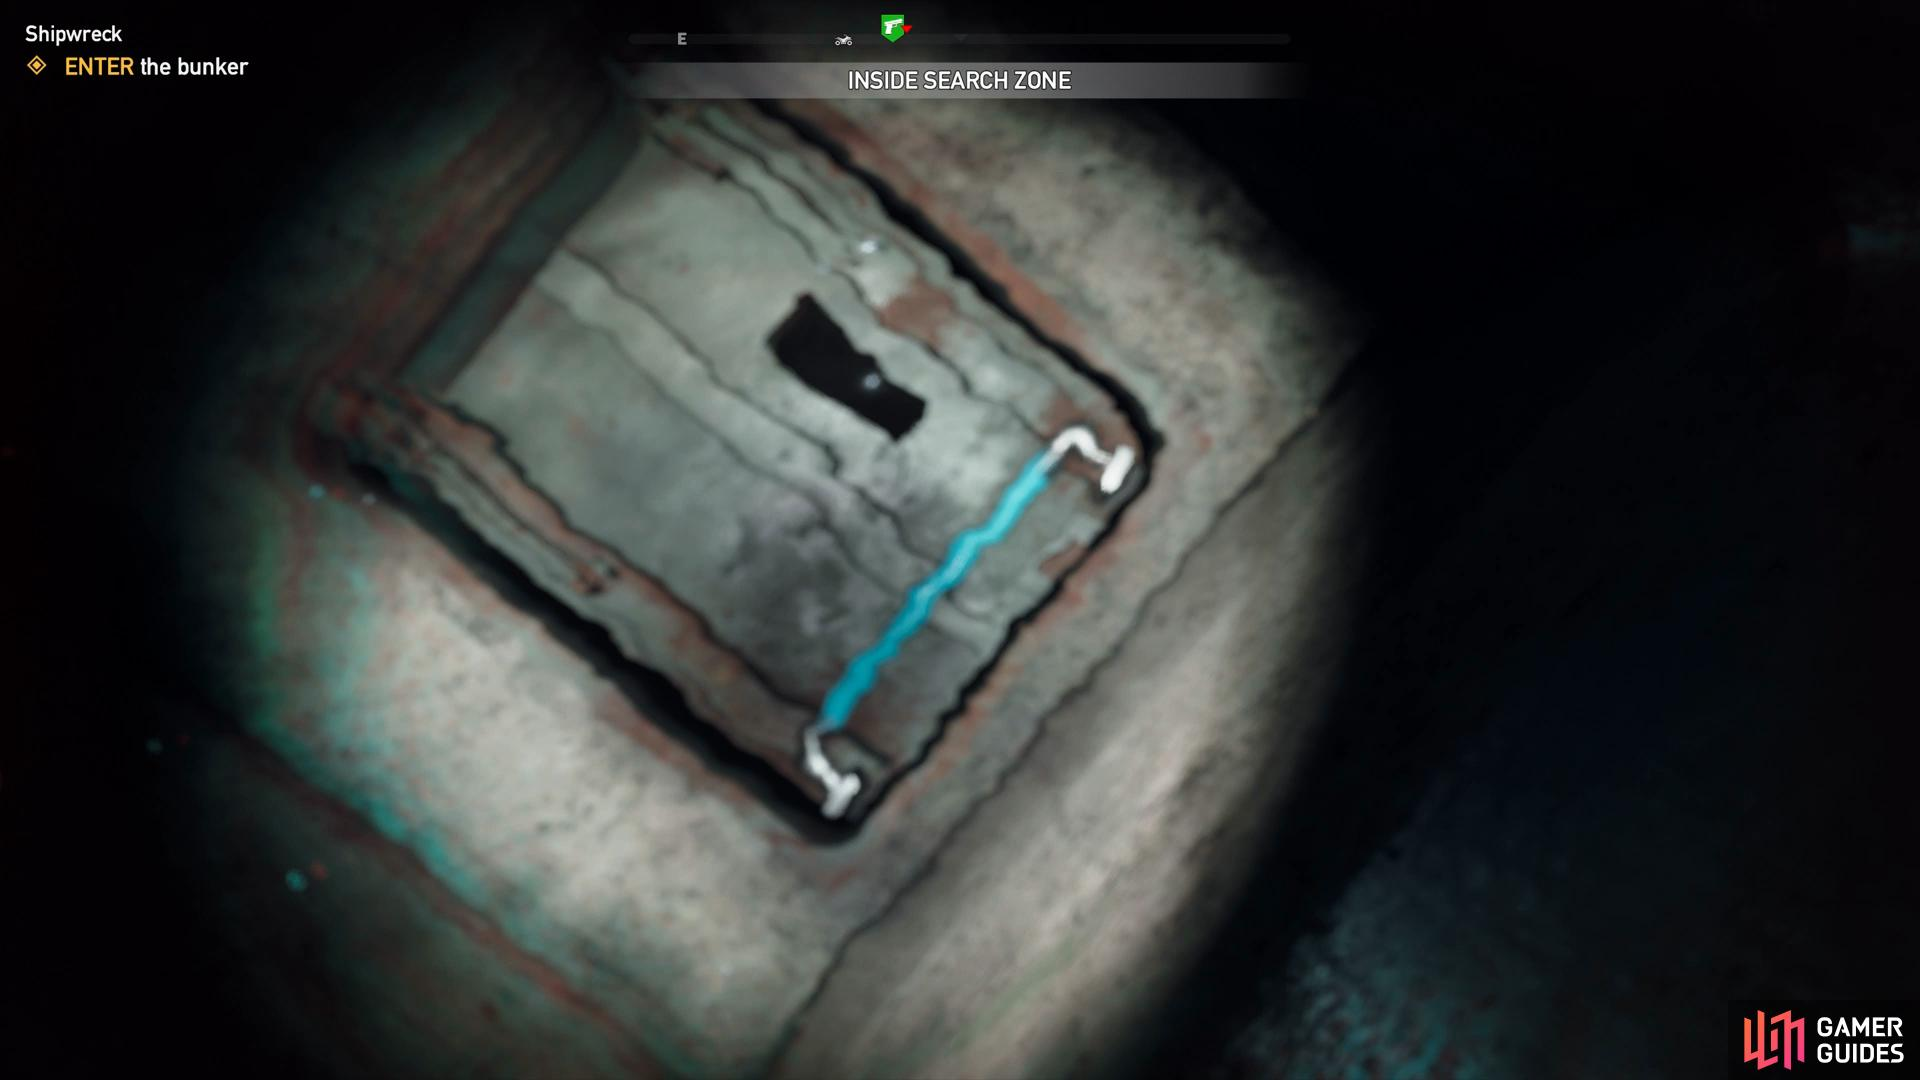 swim up and open the hatch to enter the bunker